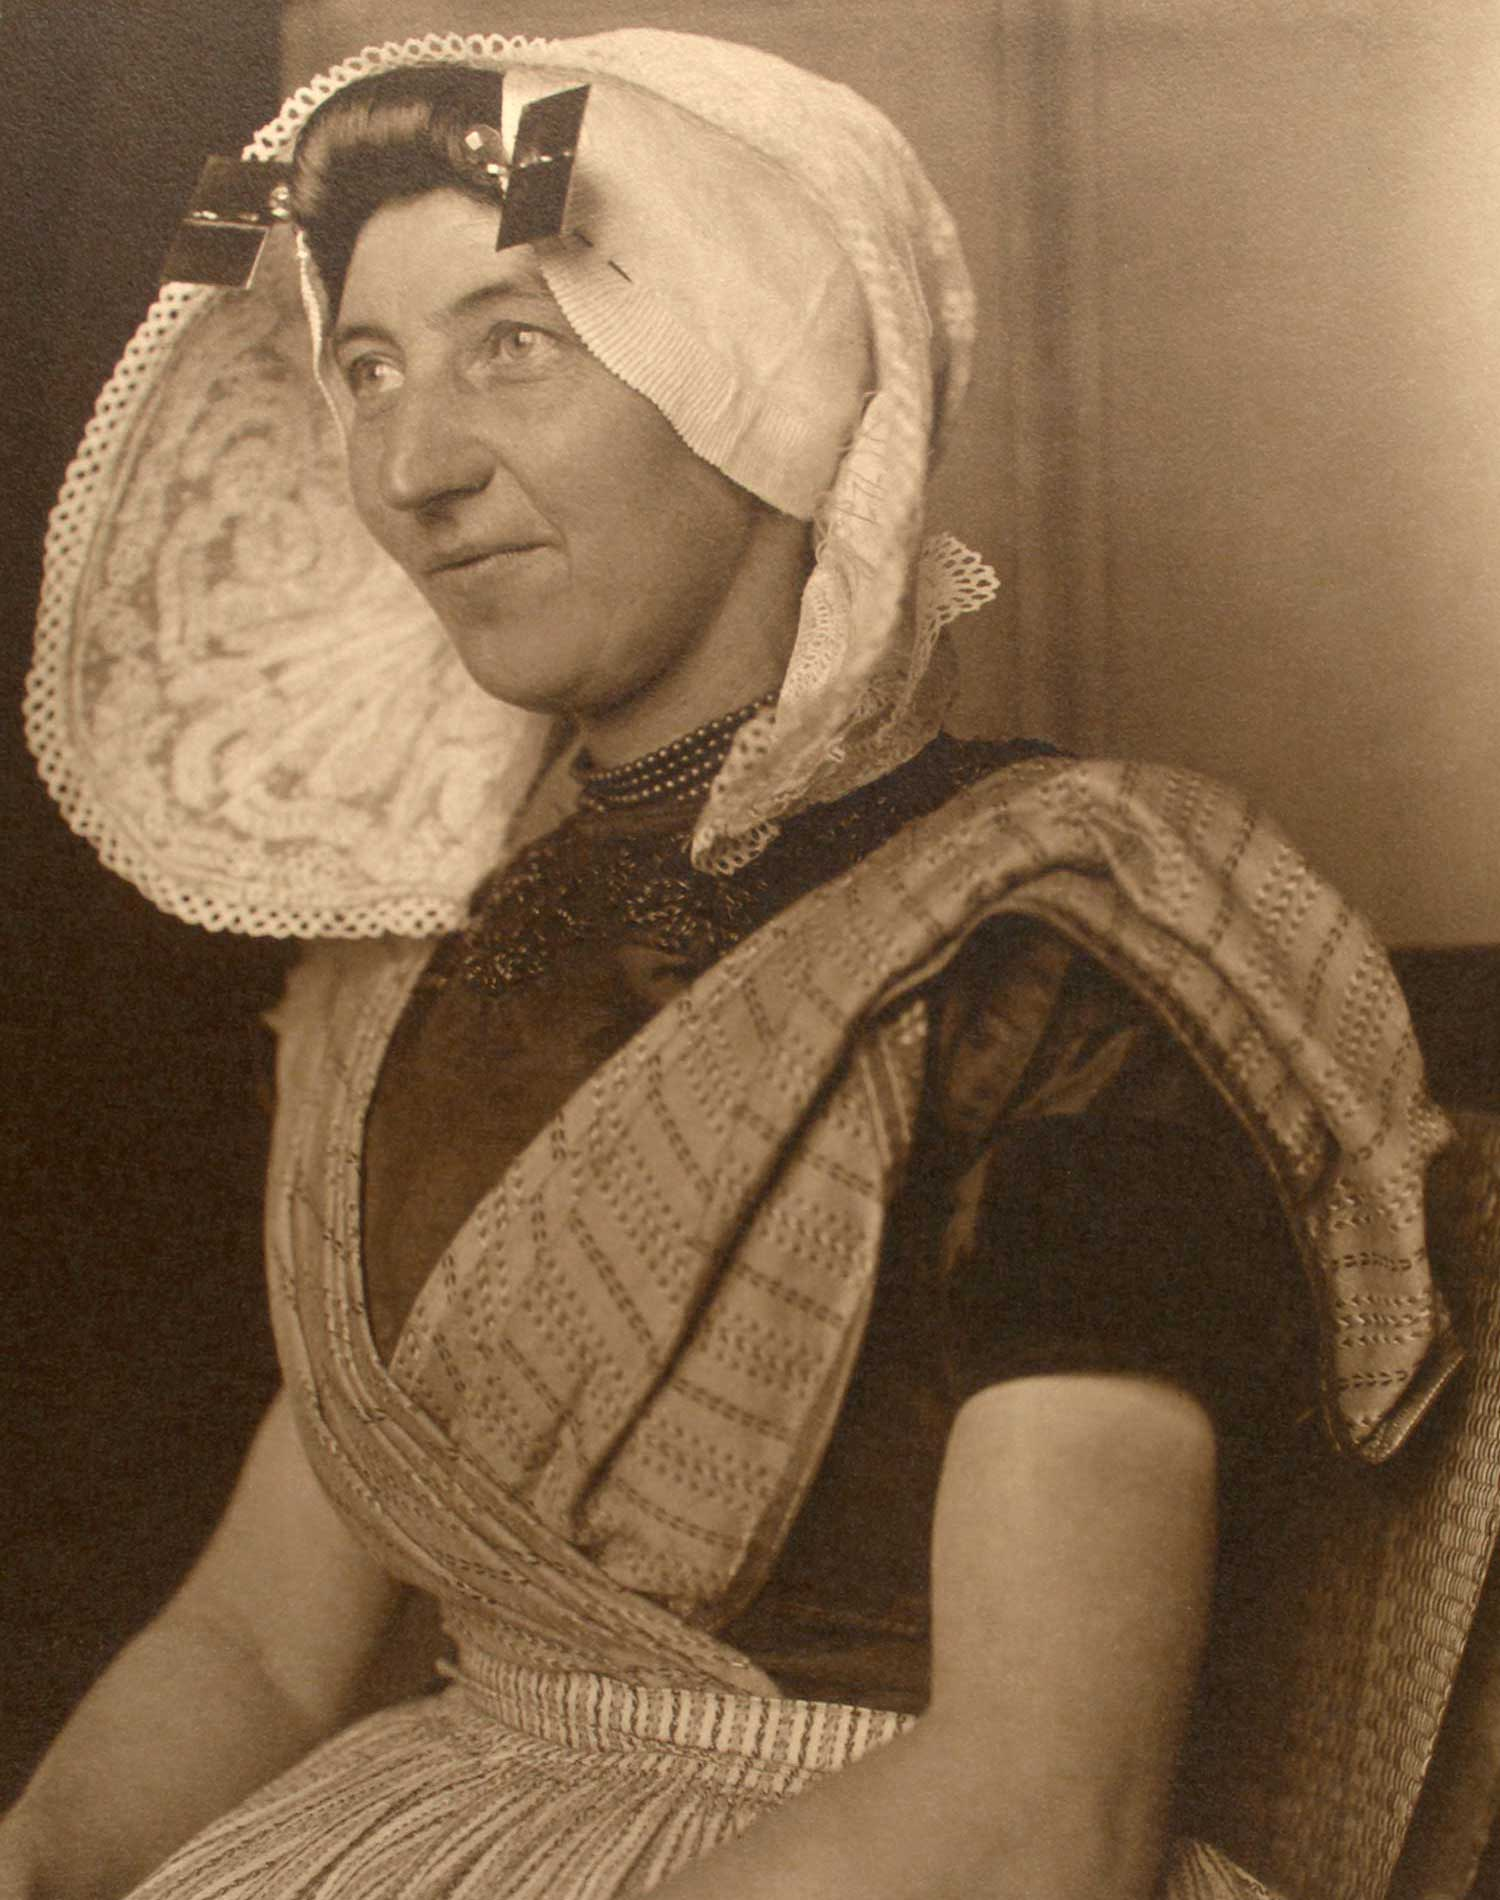 'Dutch woman' (1910)